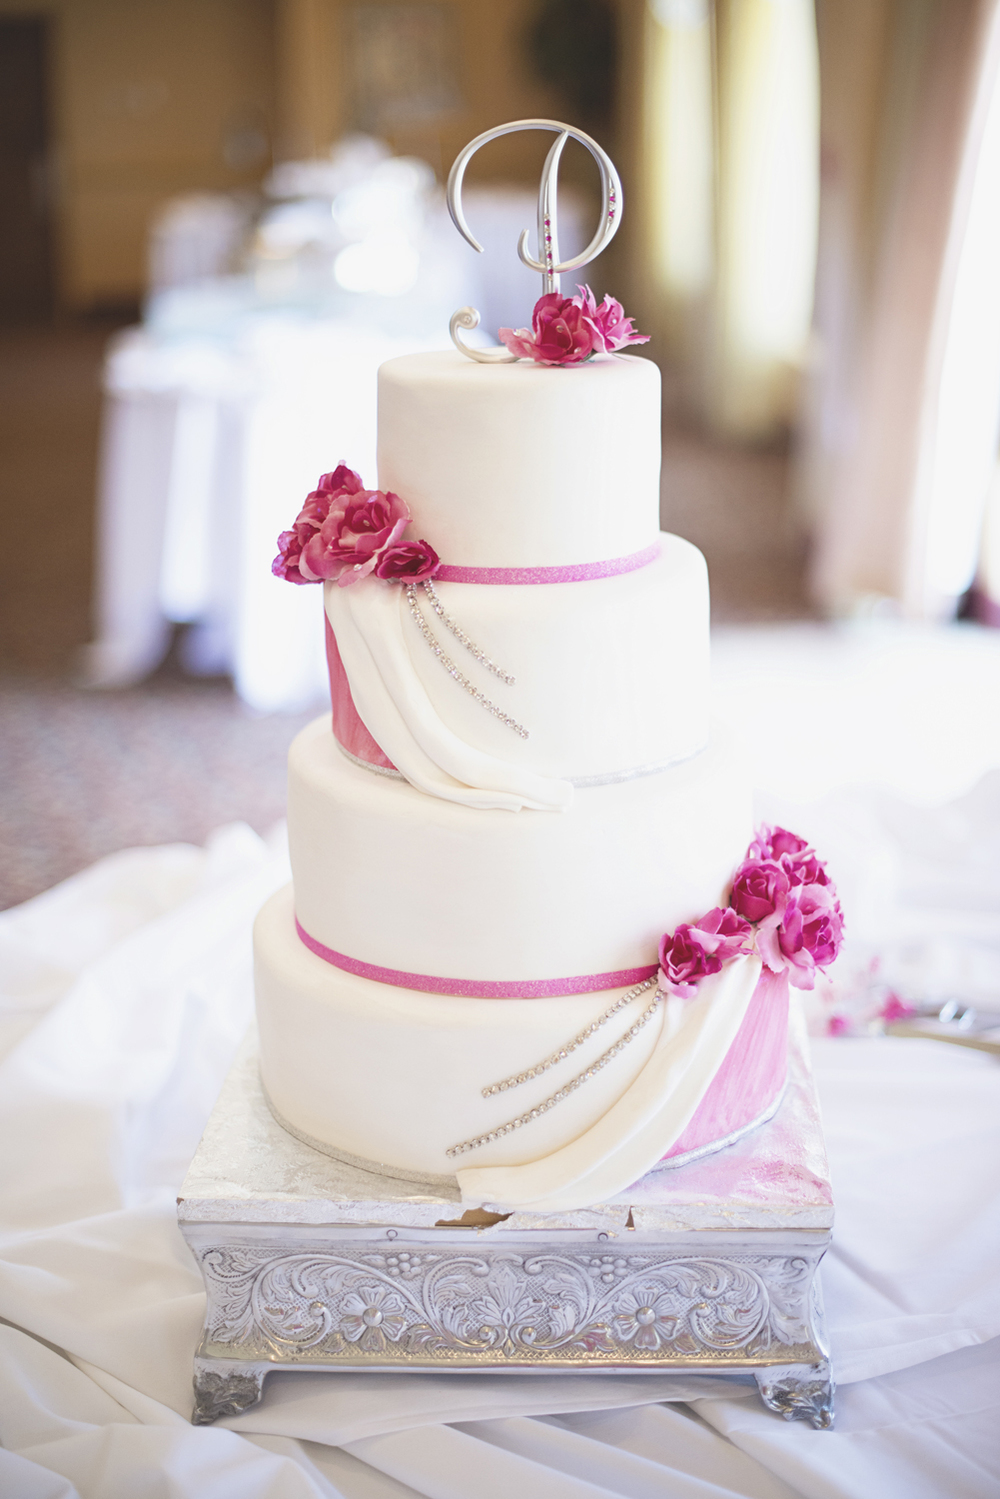 Pink, white, and silver wedding cake | Cake Delights